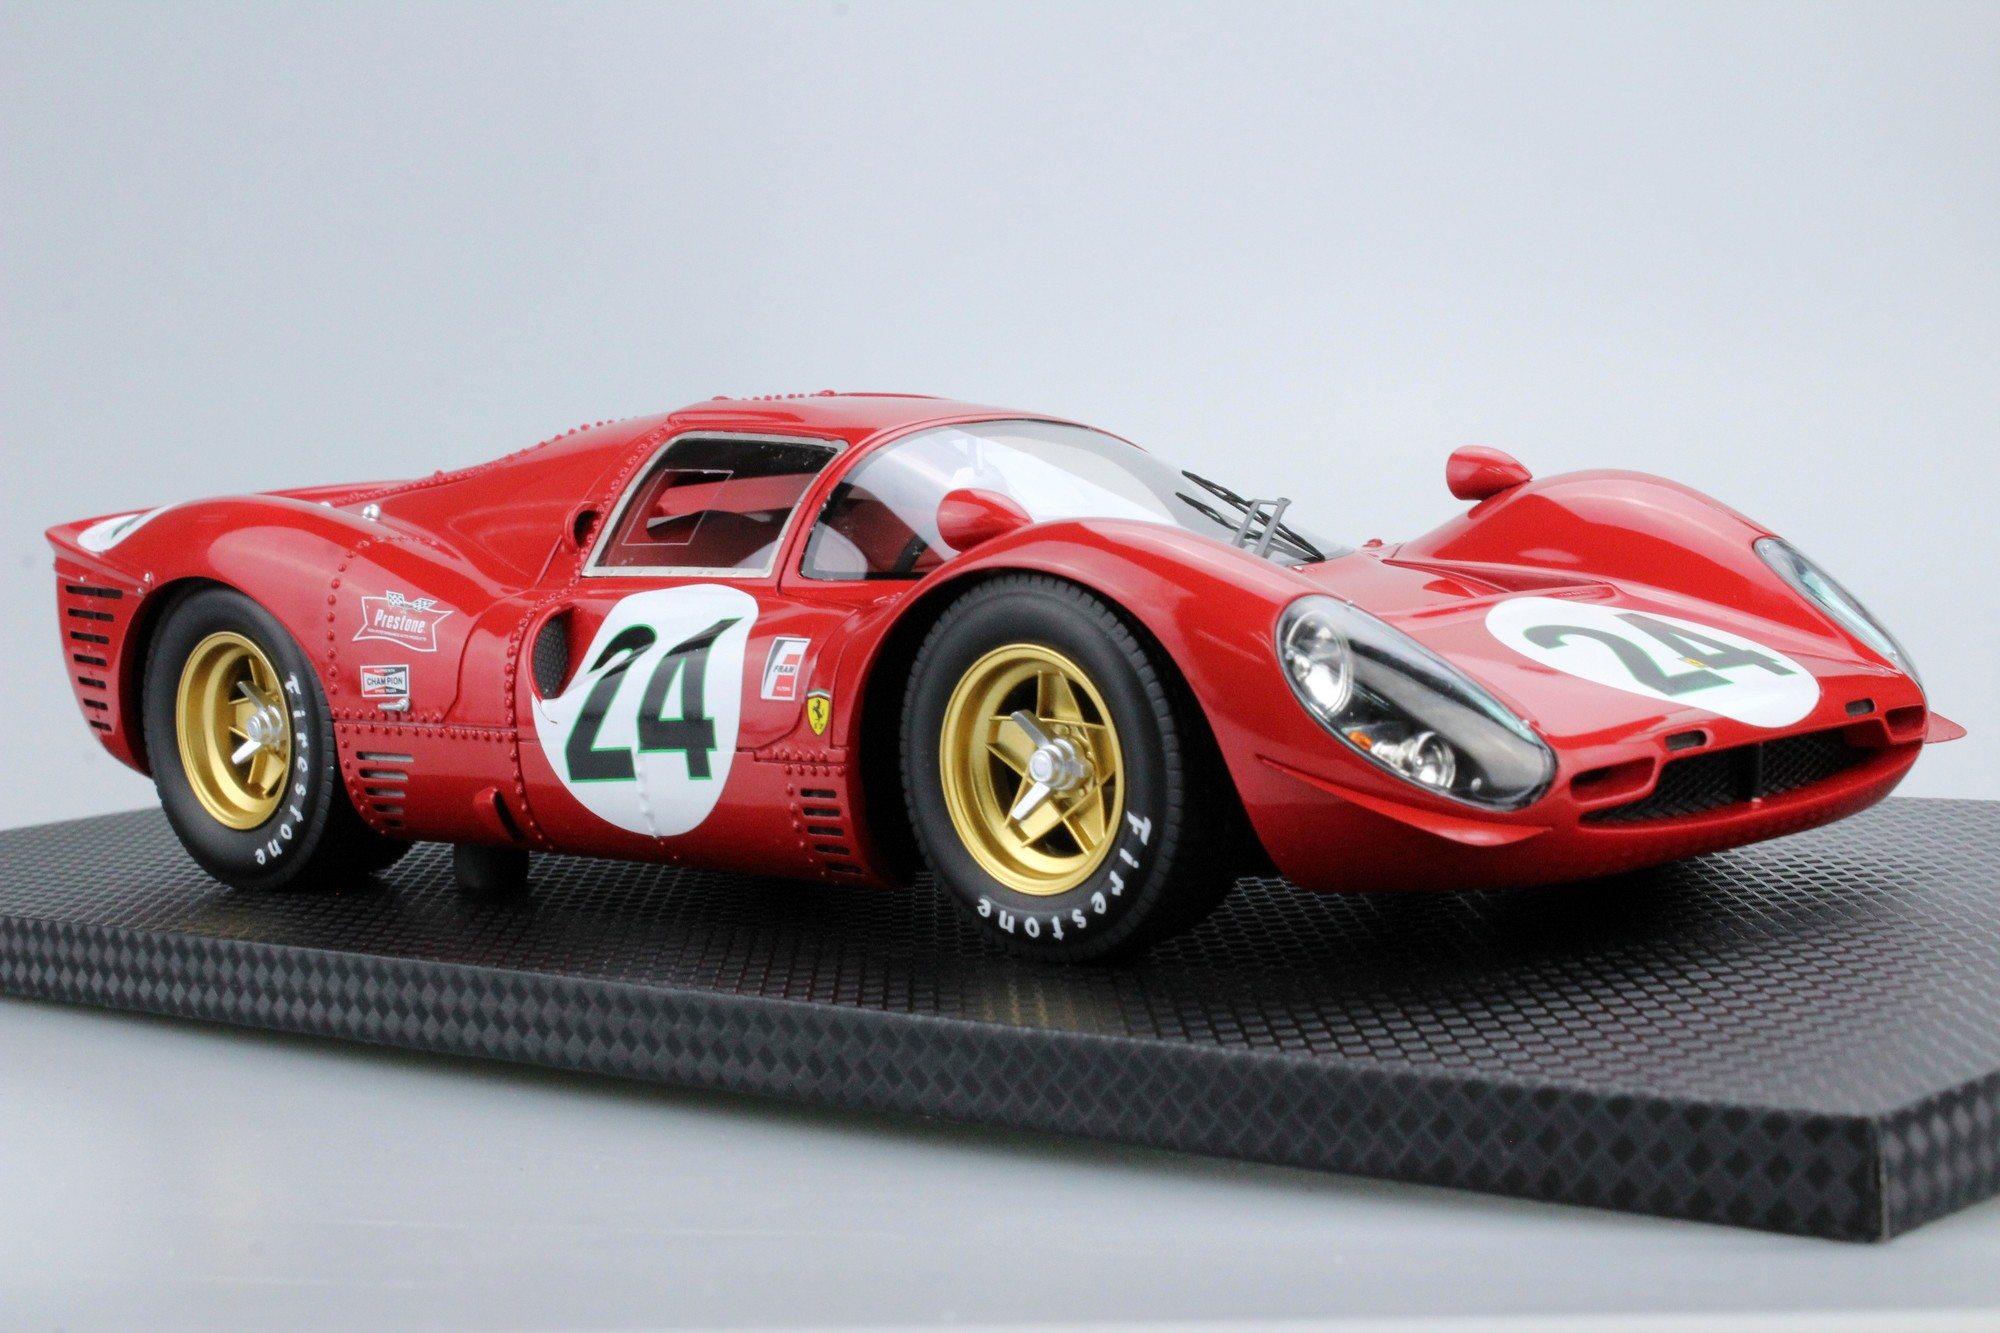 Gp Replicas 330 P4 Daytona 2nd Place 1967 24 Ludovico